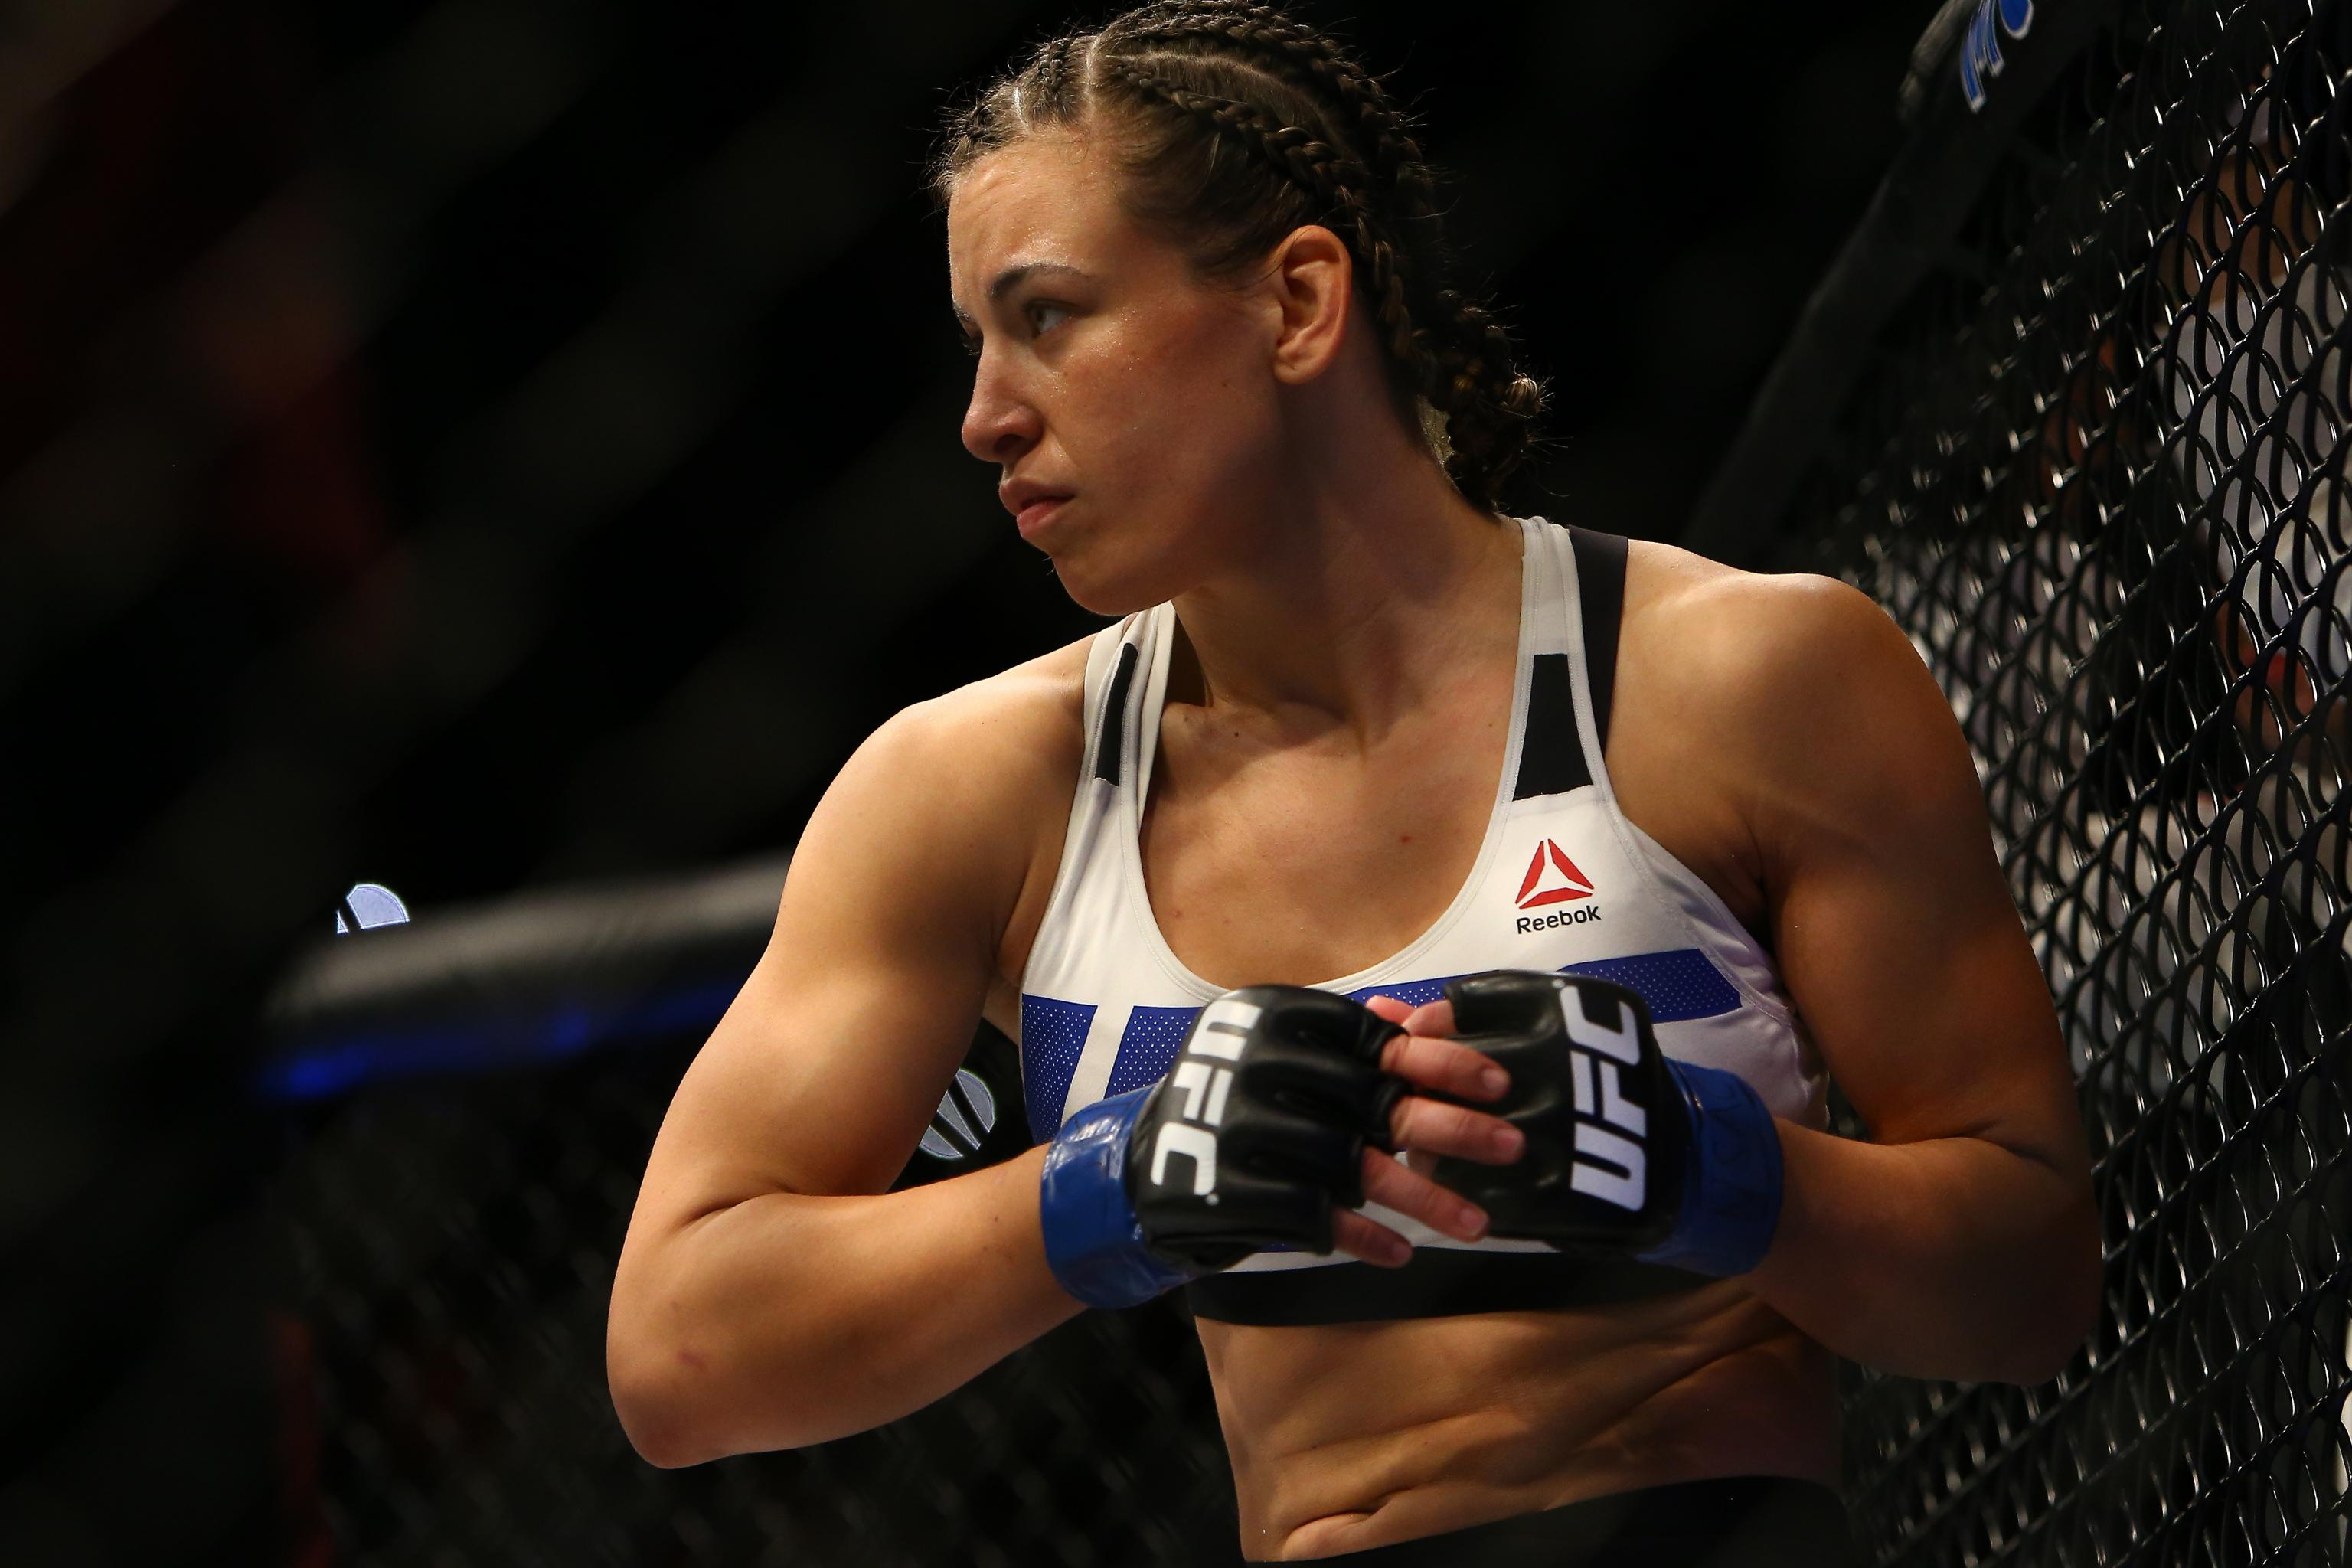 Amanda Tate miesha tate vs. amanda nunes: why is it happening, and what